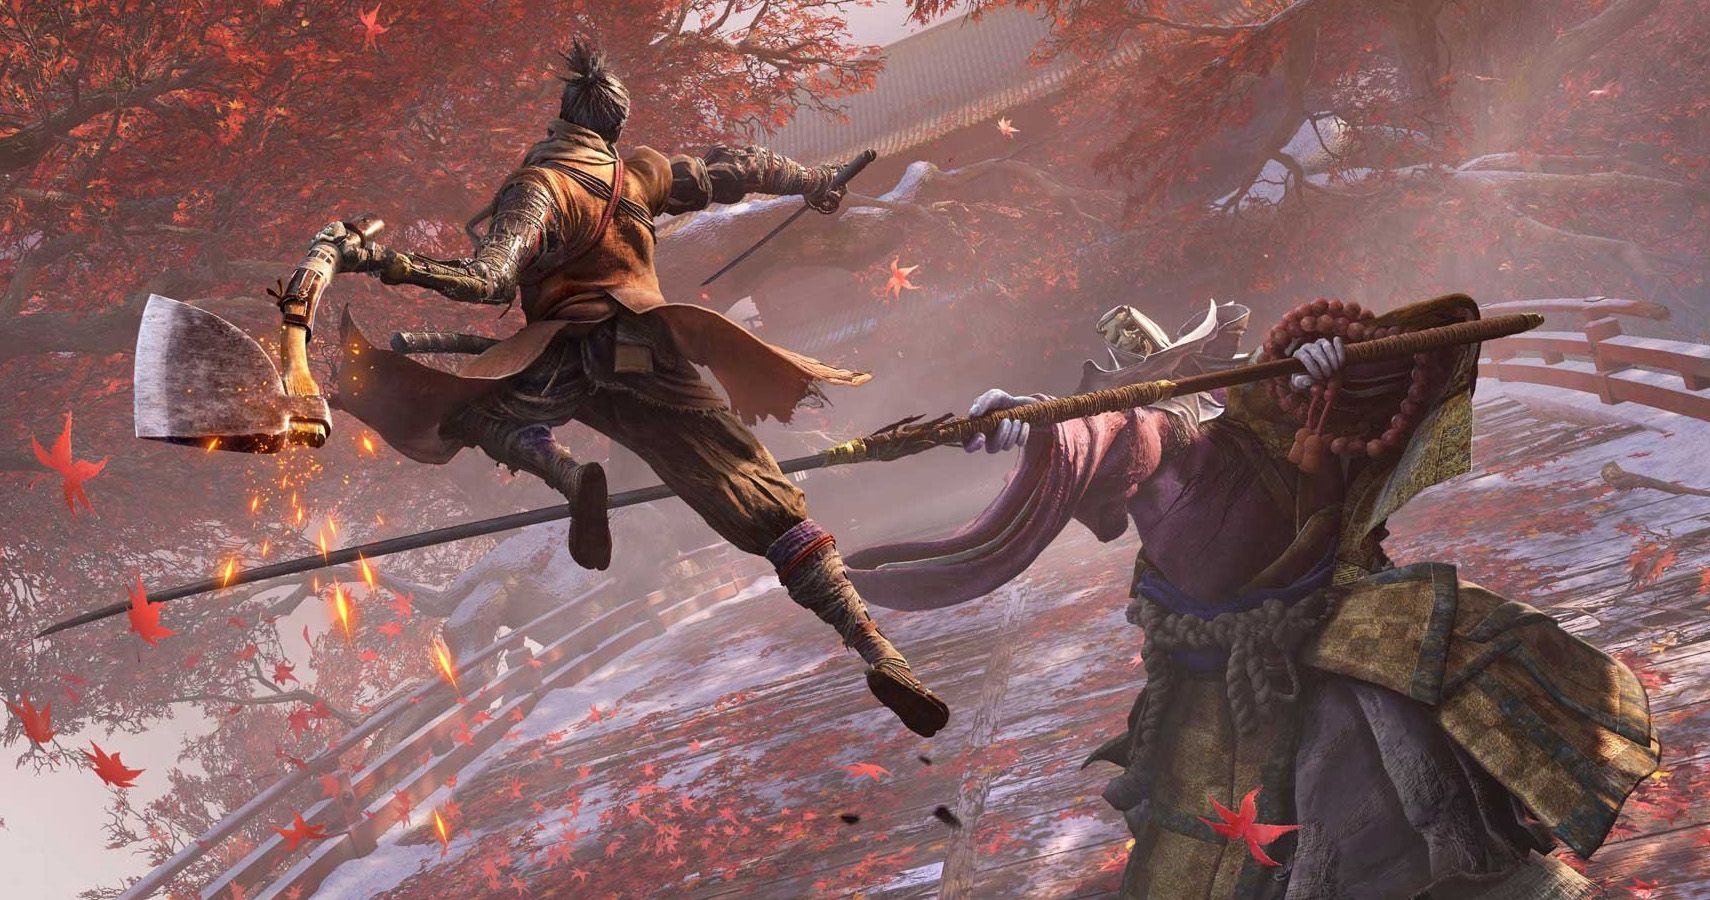 The 15 Strongest Upgrades And Items In Sekiro: Shadows Die